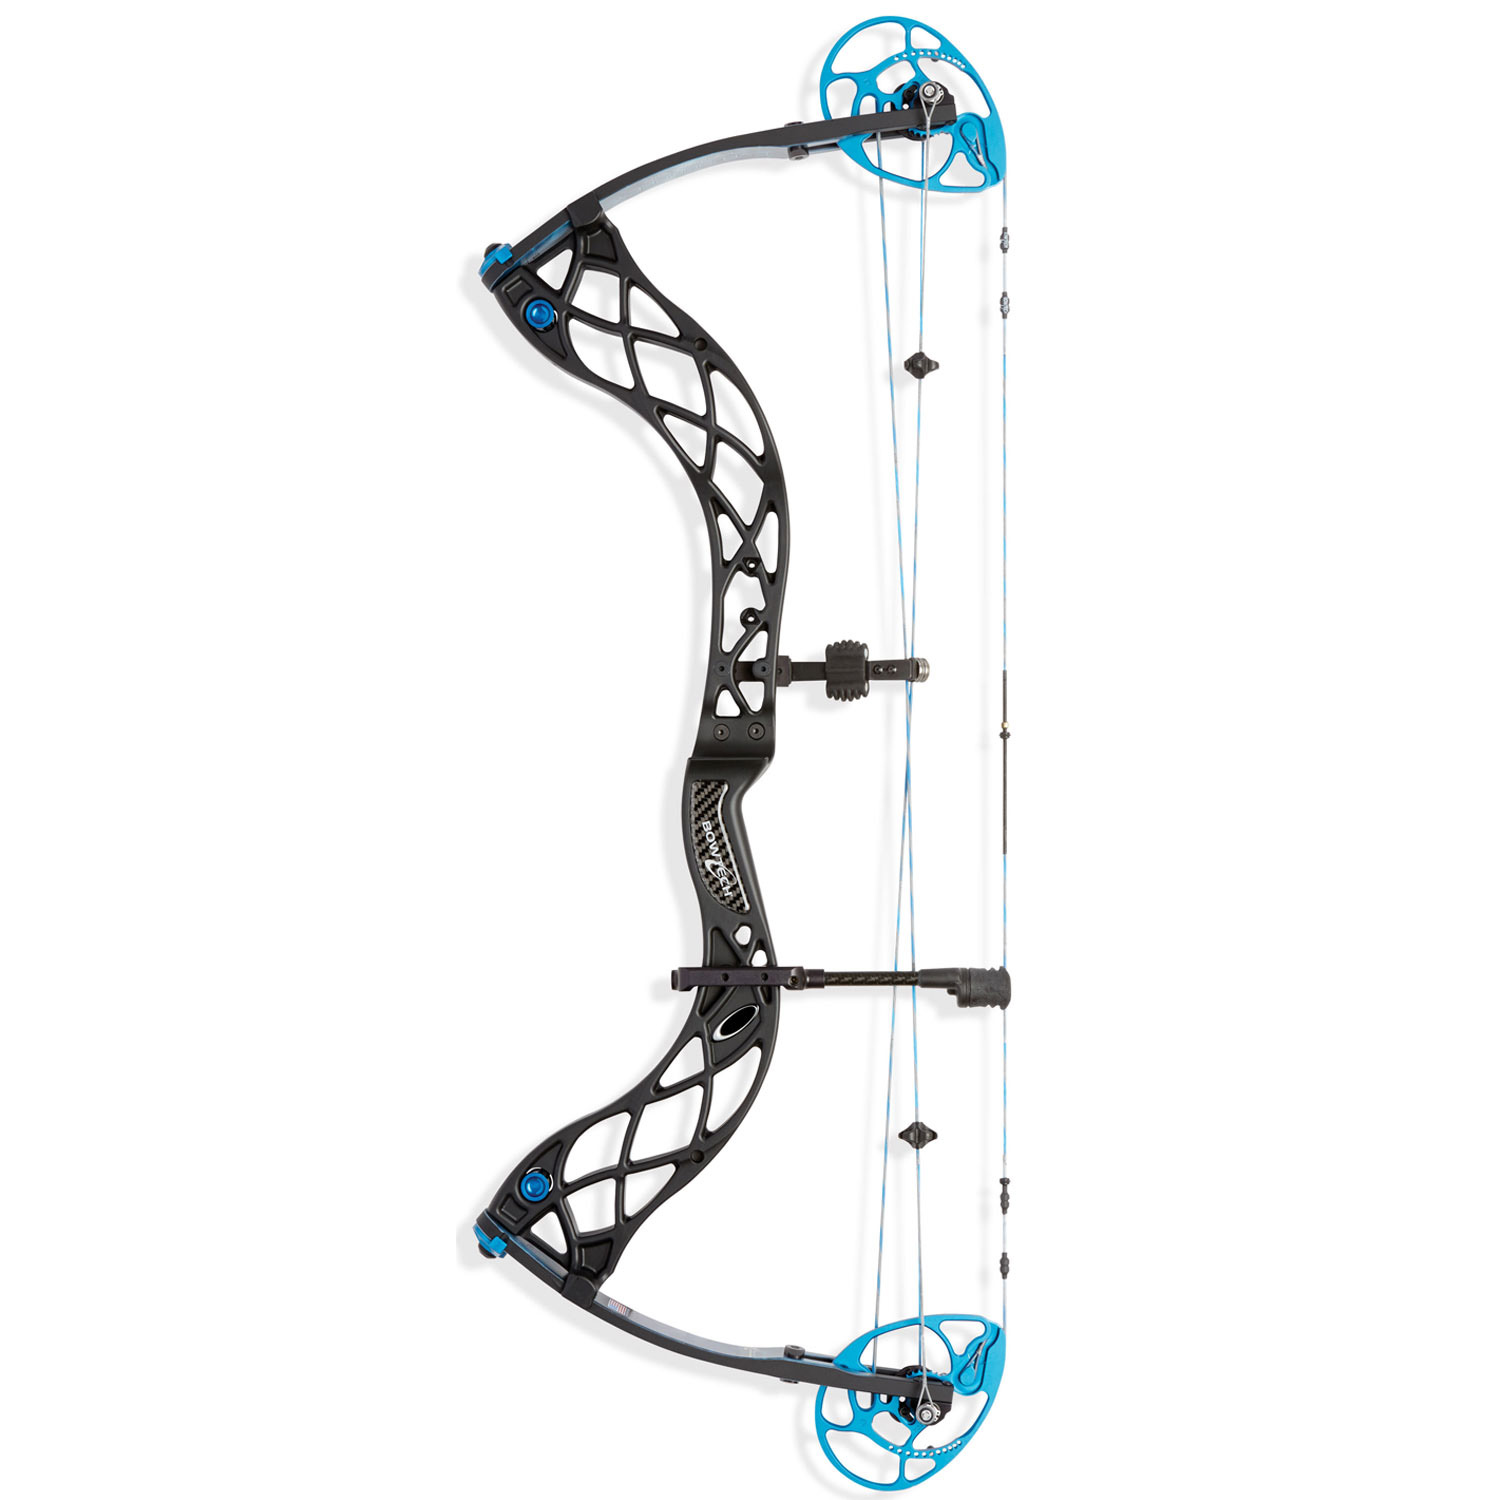 Bowtech Eva Shockey 伊娃 复合弓